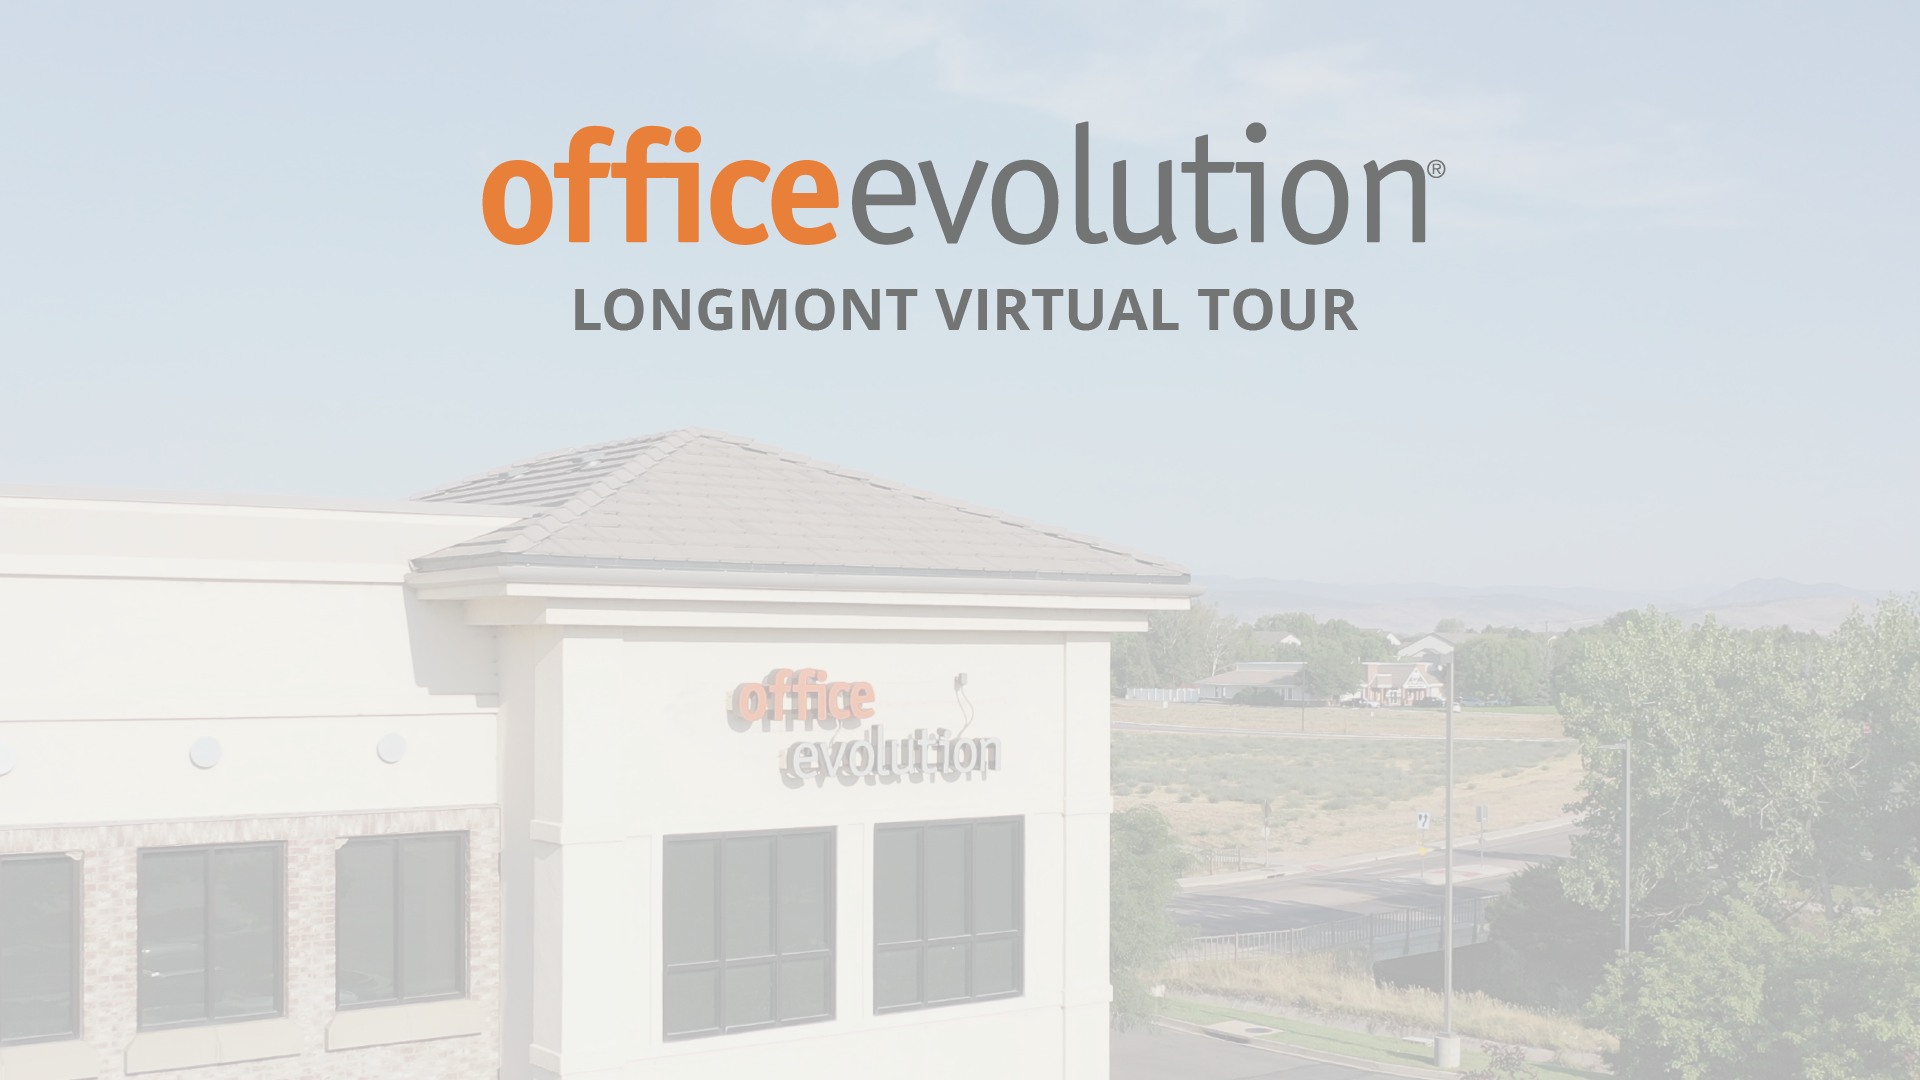 Virtual Tour of Office Evolution in Longmont, CO